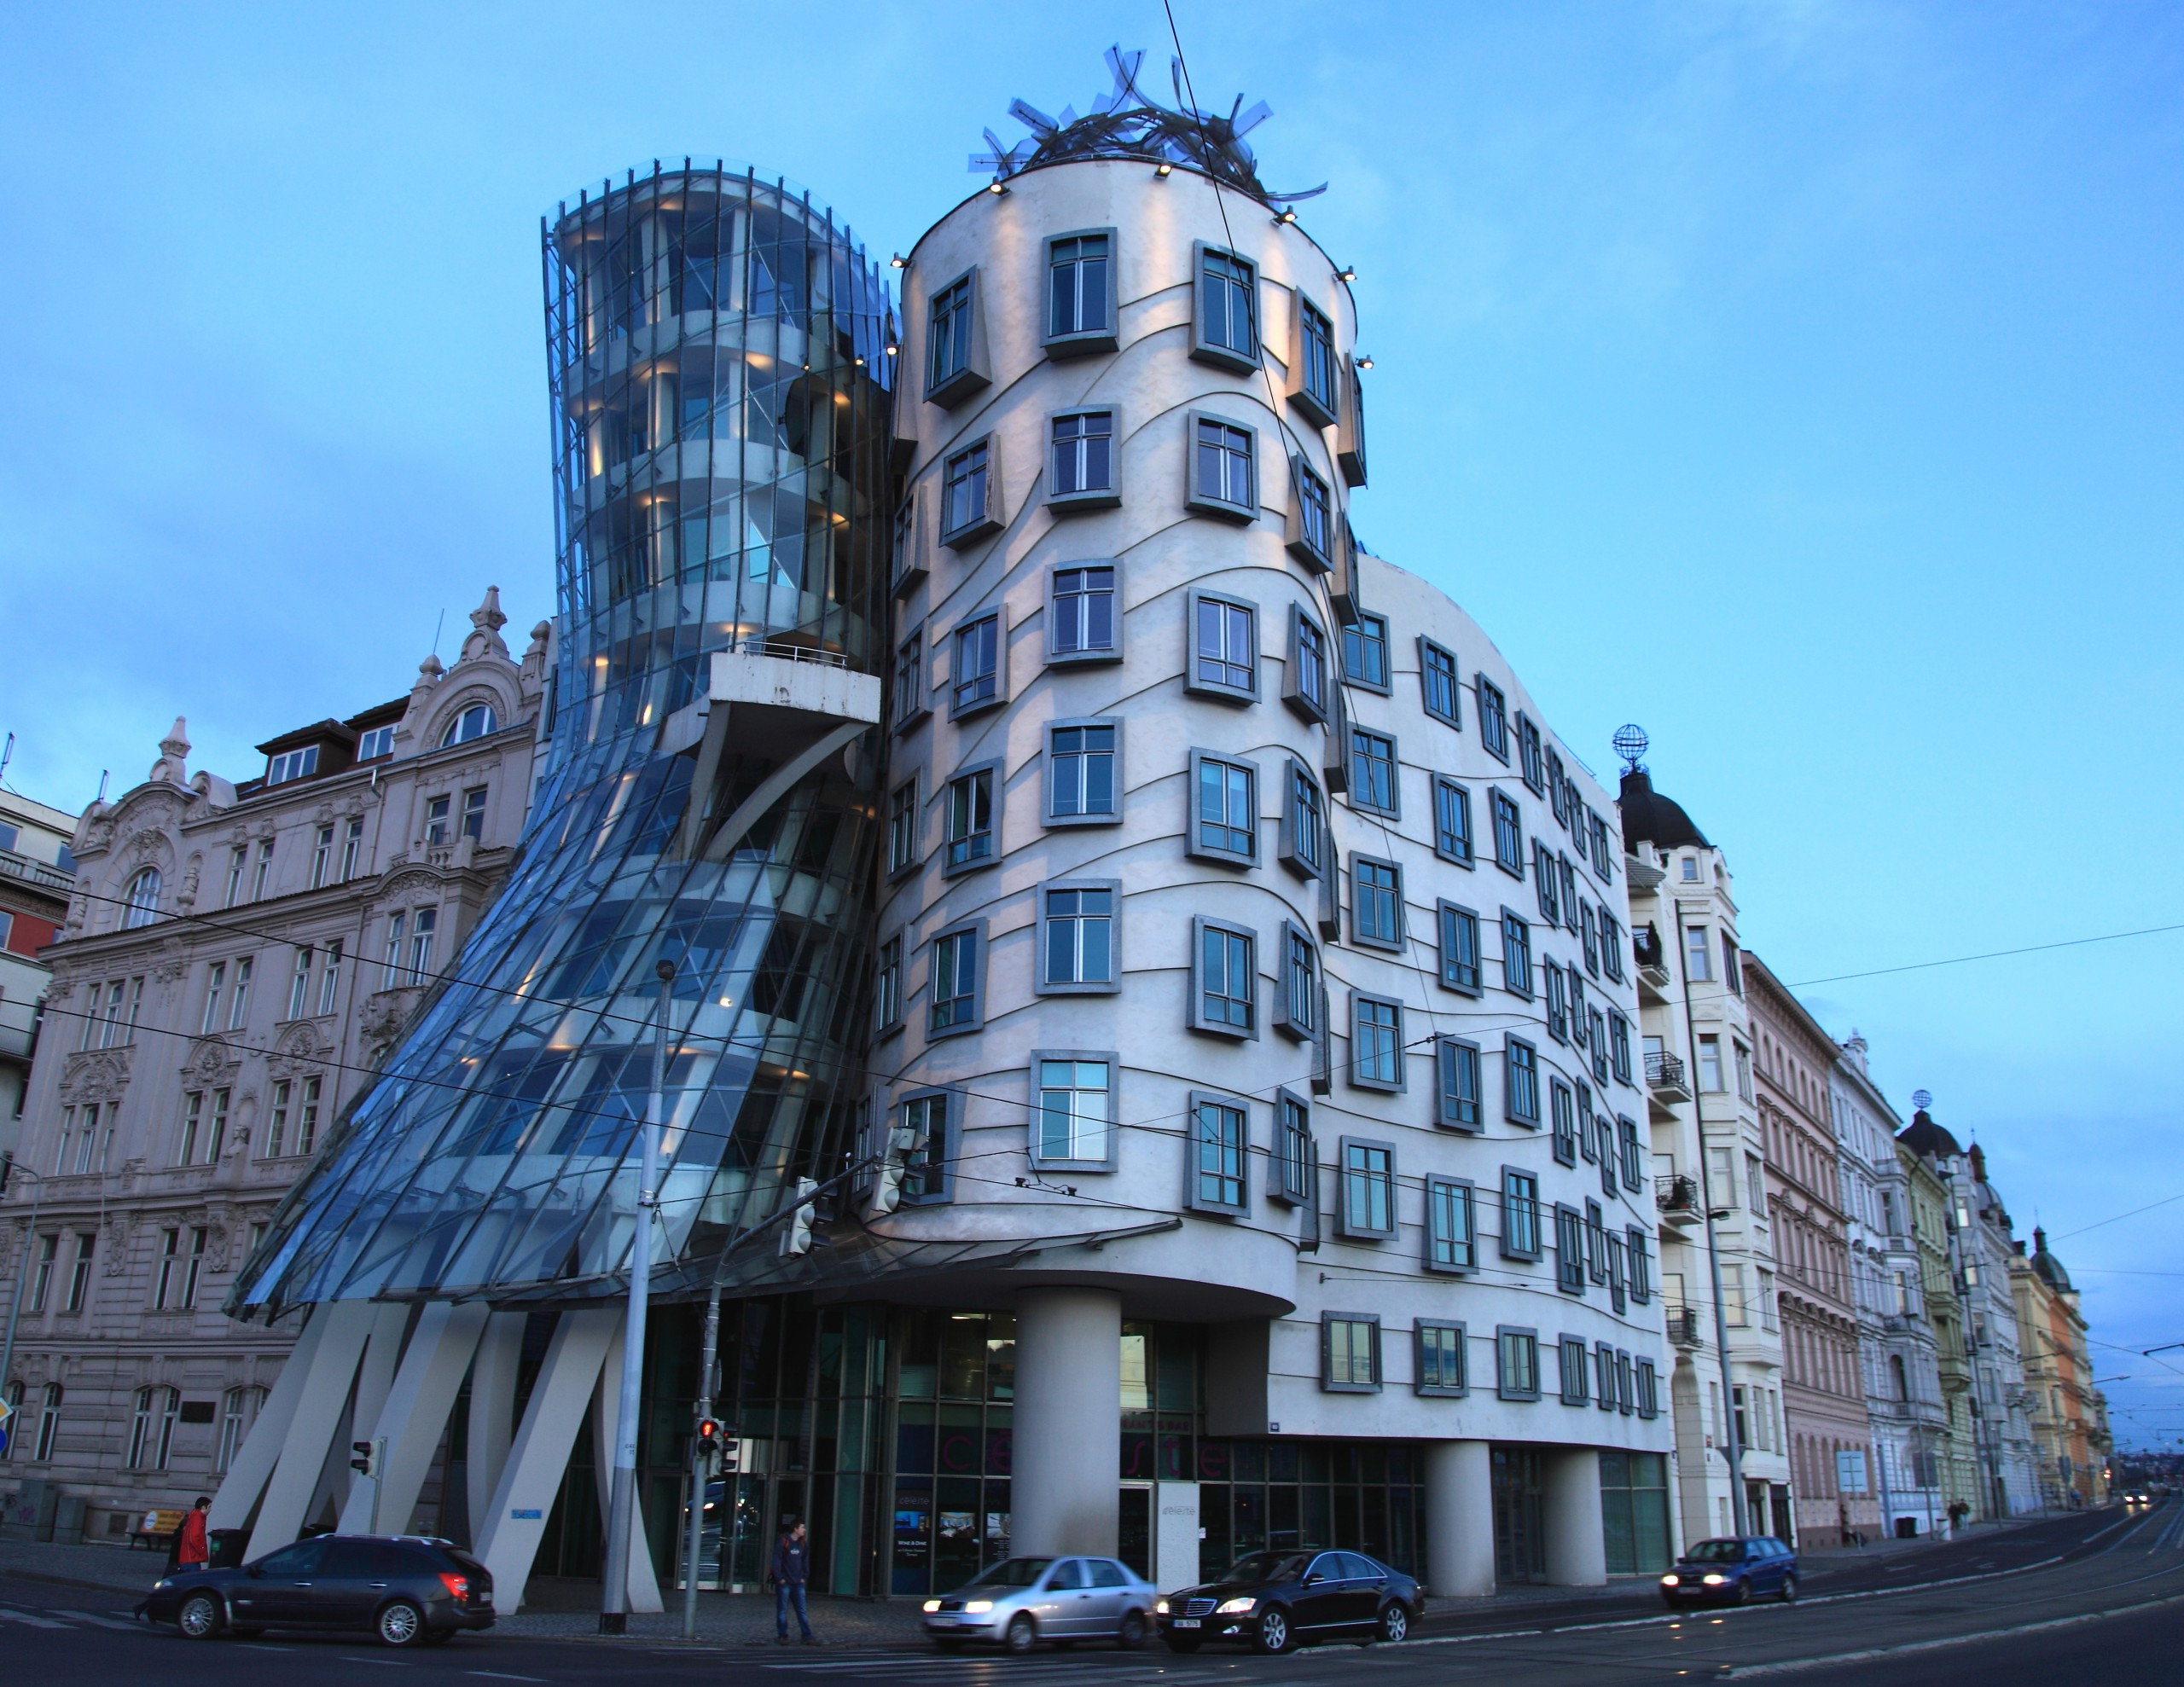 Dancing House Hotel from street level